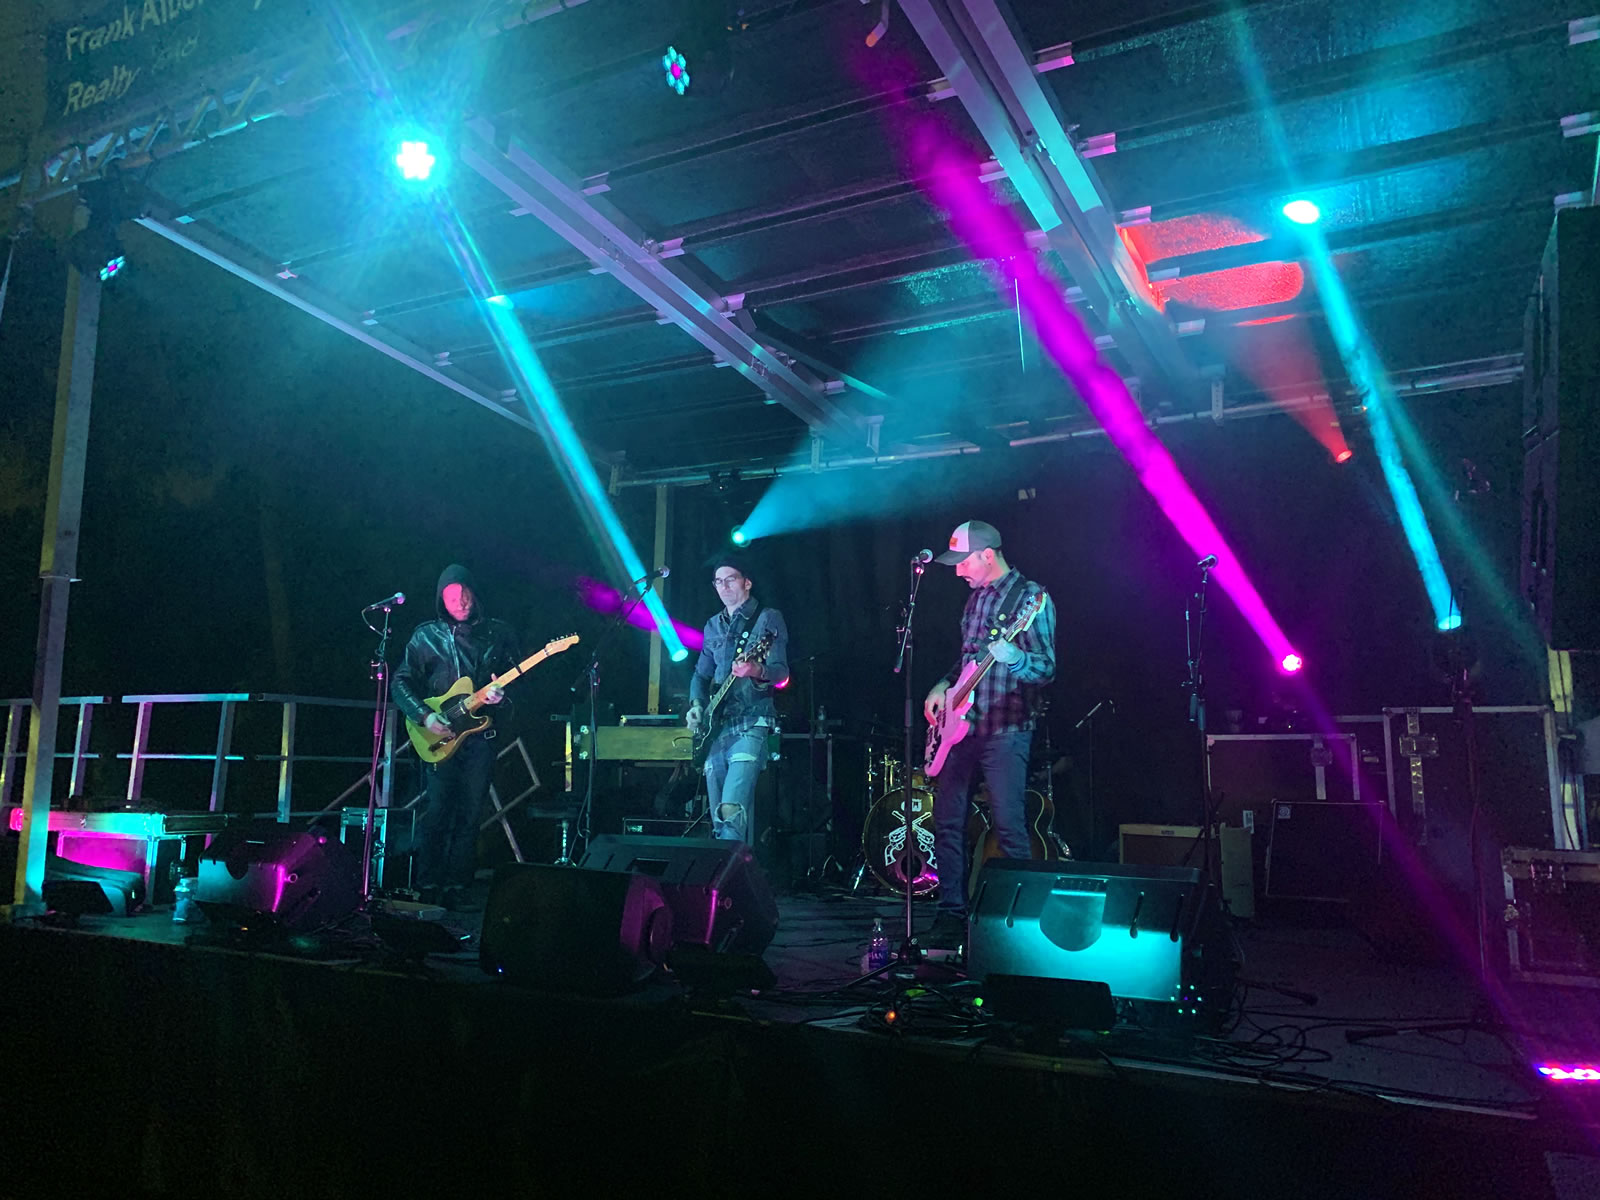 The warmly-dressed guitarists and bassist from 'Have Gun Will Travel' playing onstage at River Tower Concert in evening.